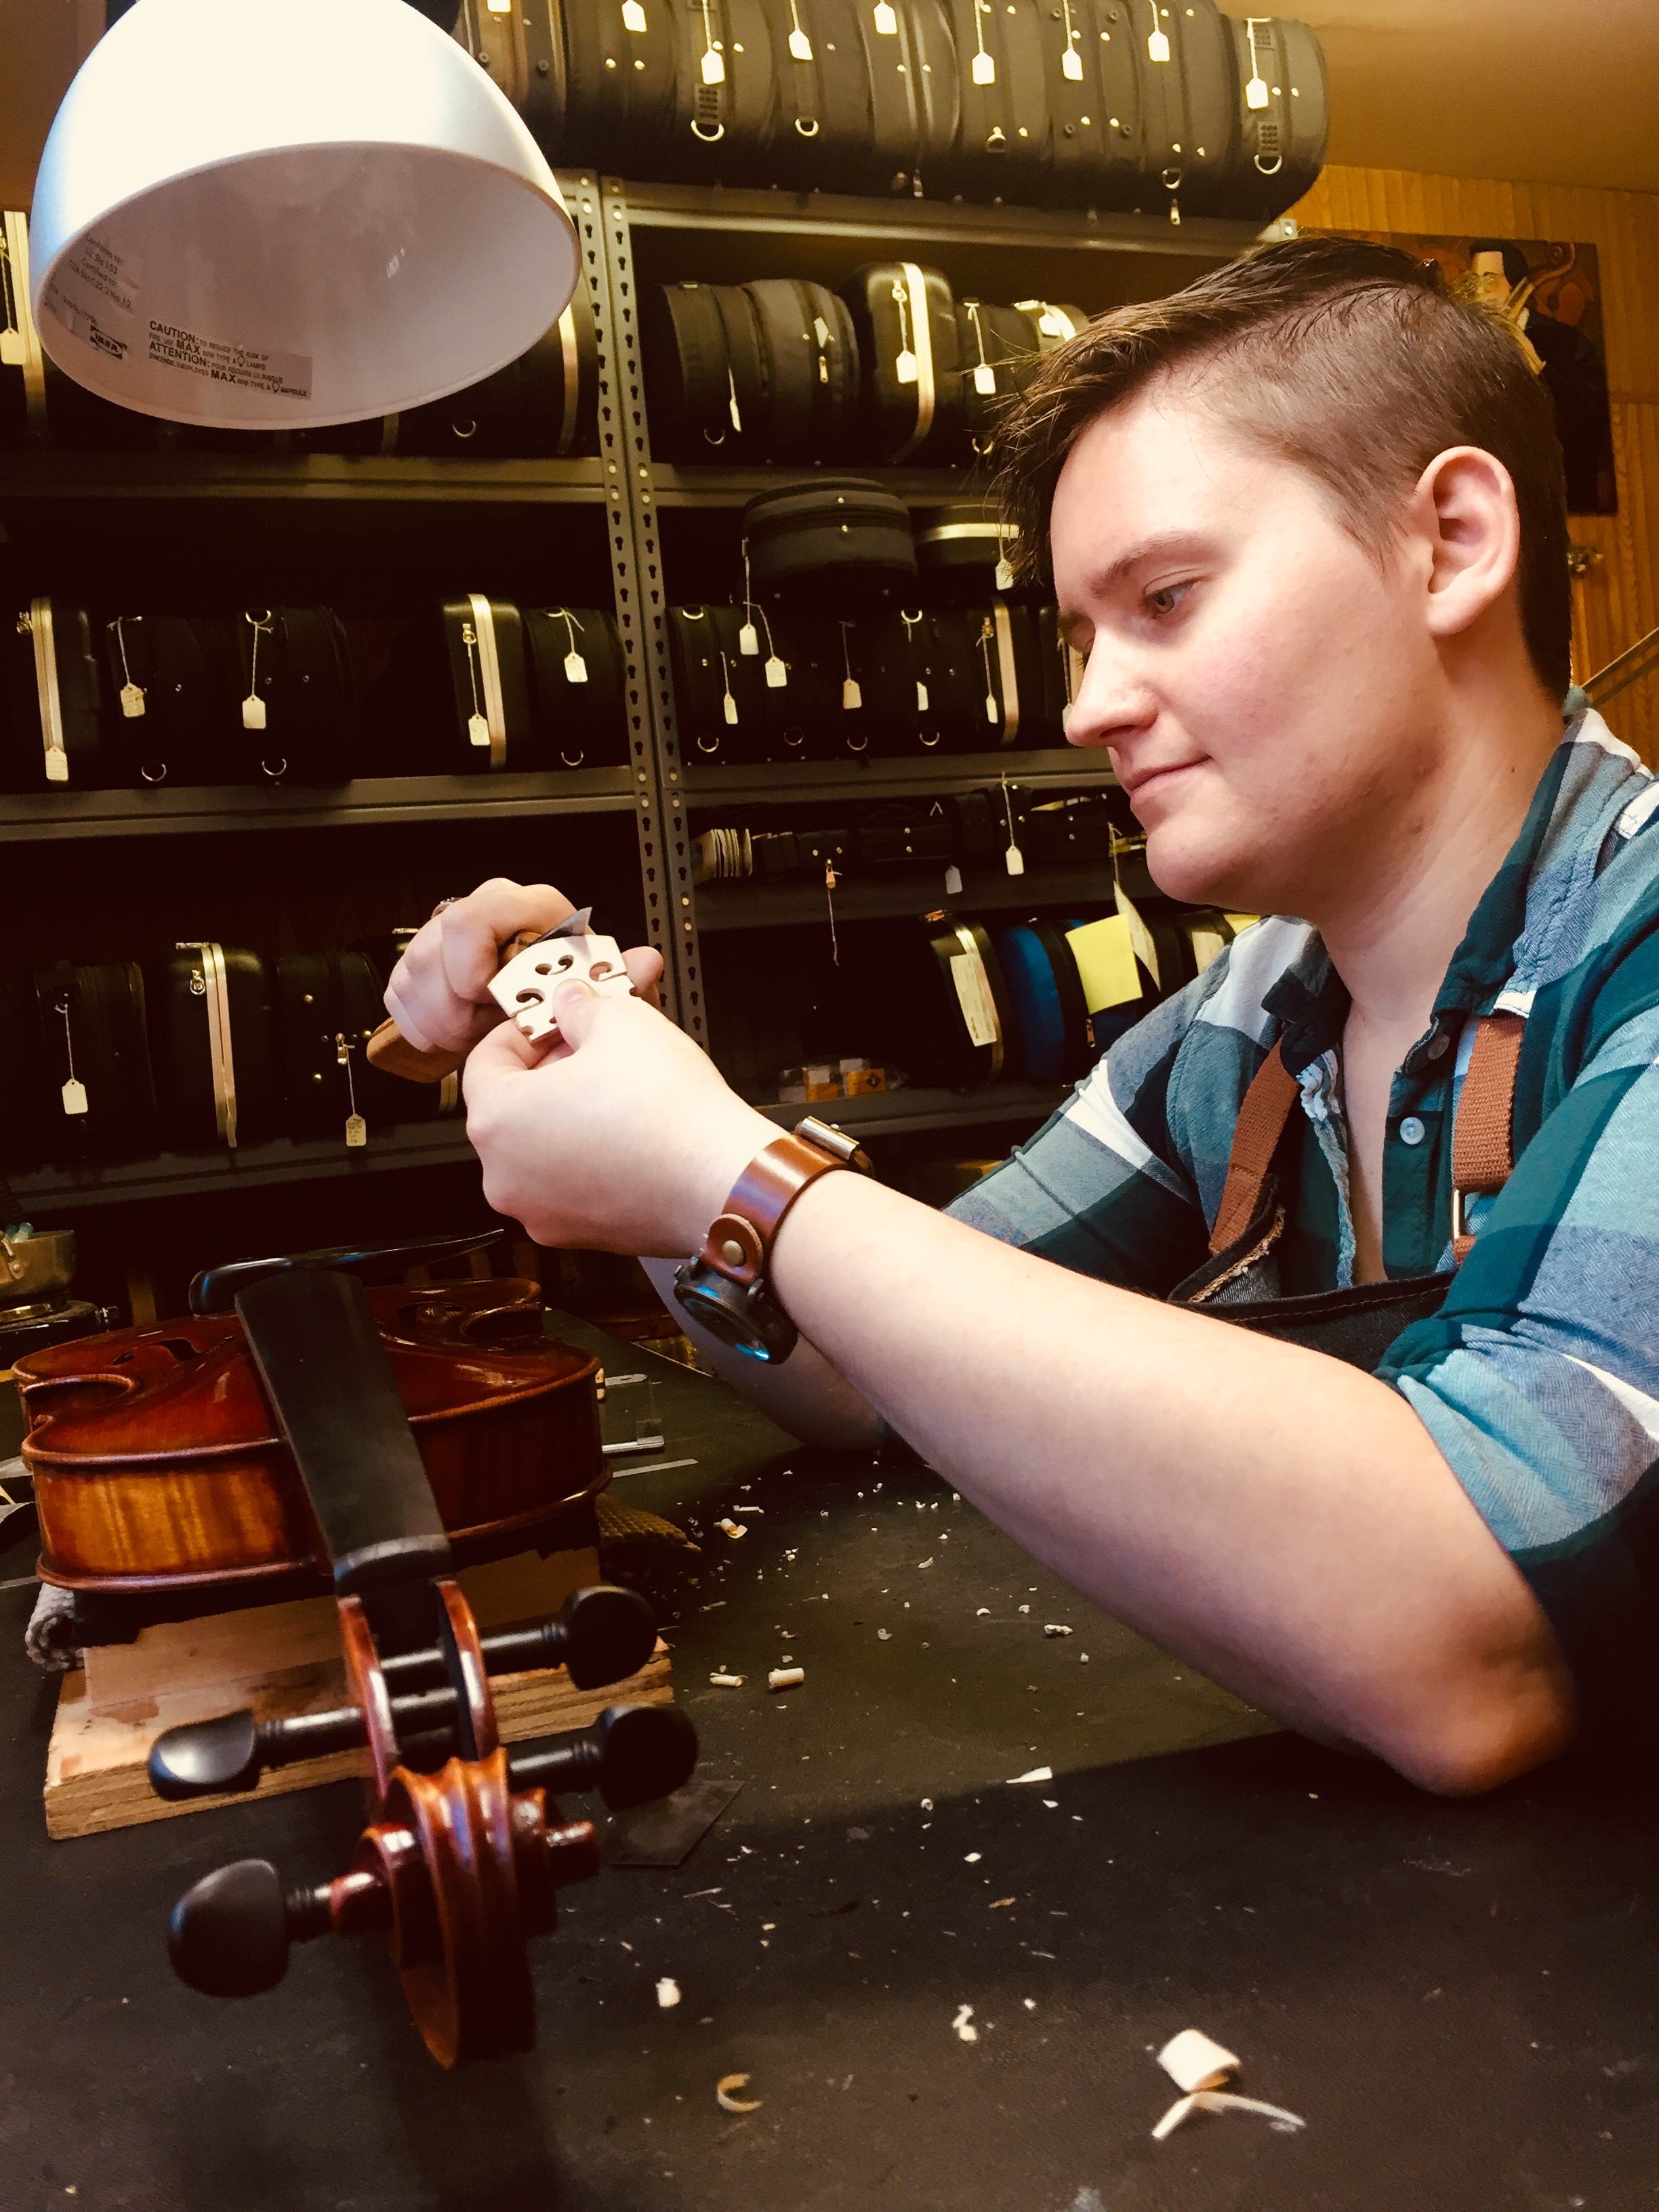 Cat Autrey - Certified Luthier - Cat is a graduate of Red Wing Violin Repair School, class of 2016 that studied under Lisbeth Nelson Butler in Red Wing, Minnesota.She is a Tulsa native and Union High School graduate.Since beginning at Tulsa Strings in 2016 Cat has provided her expertise with instrument and bow repair,setups,and instrument making. Cat has a passion for the history and art of luthiery. Attention to detail and meticulous accuracy make her an invaluable part of the Tulsa Strings workshop. Cat also plays with the local community orchestra on violin at TCC.